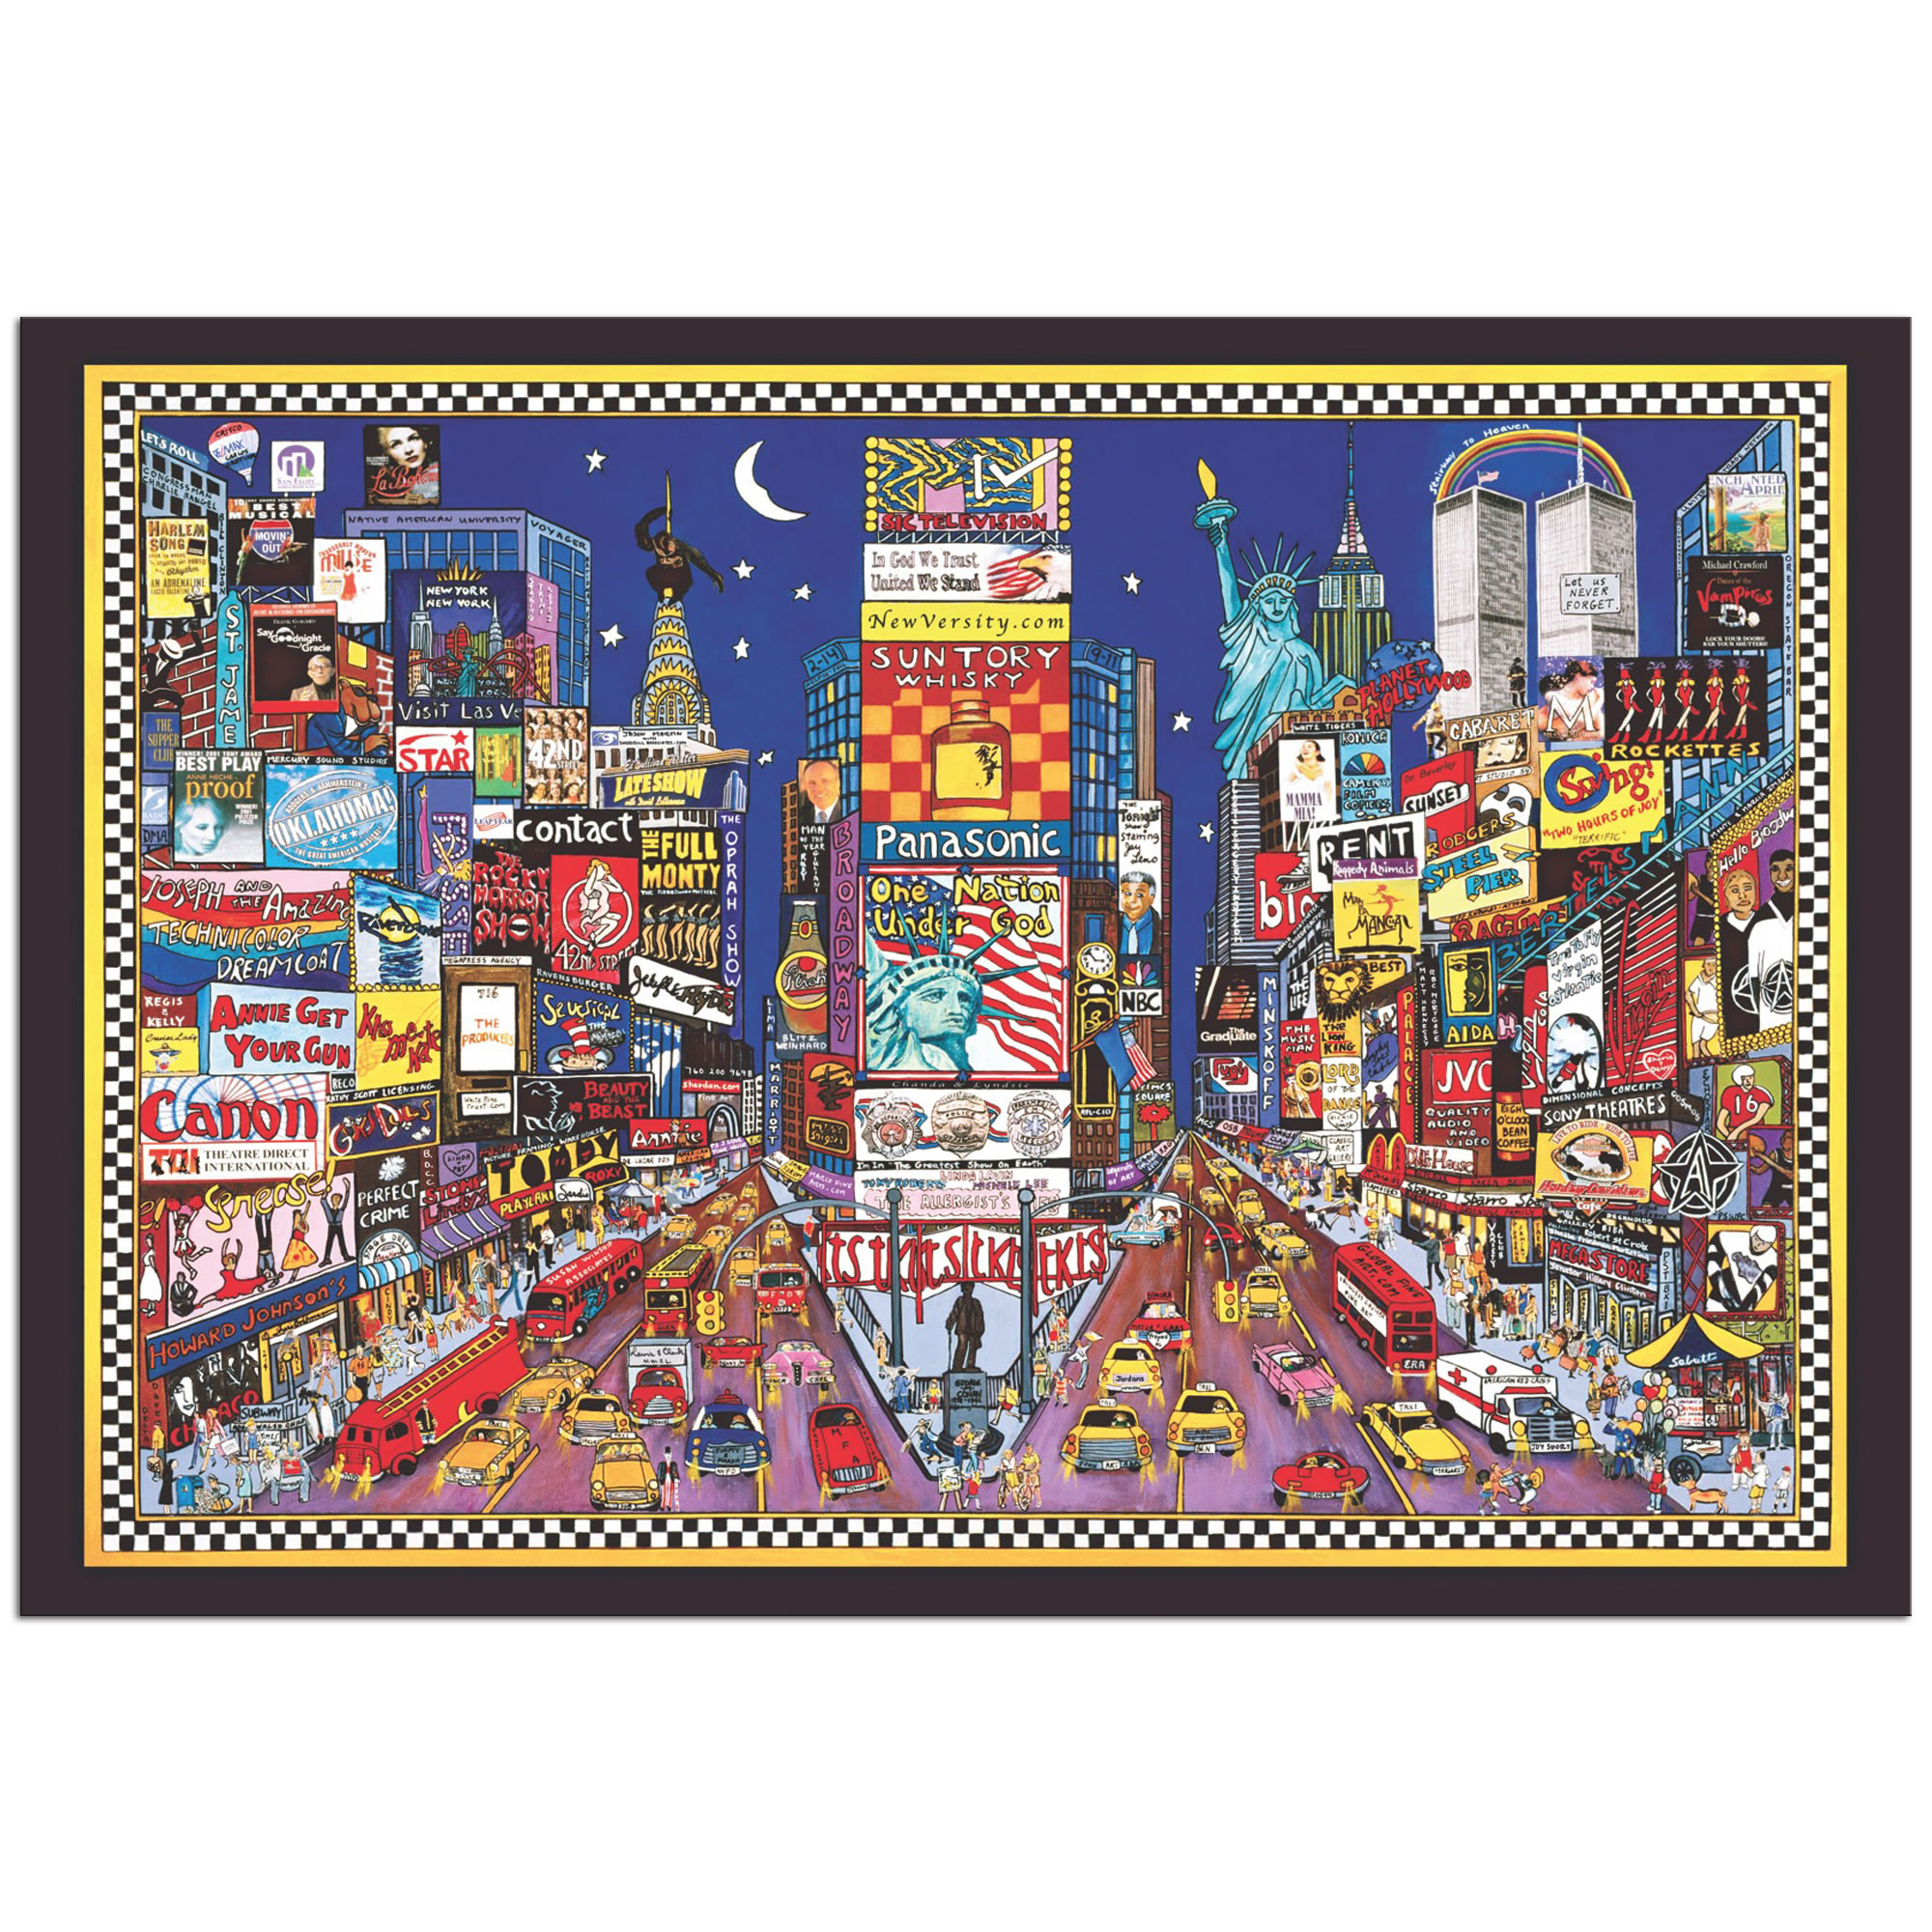 New York City - Abstract Cityscape Painting Print